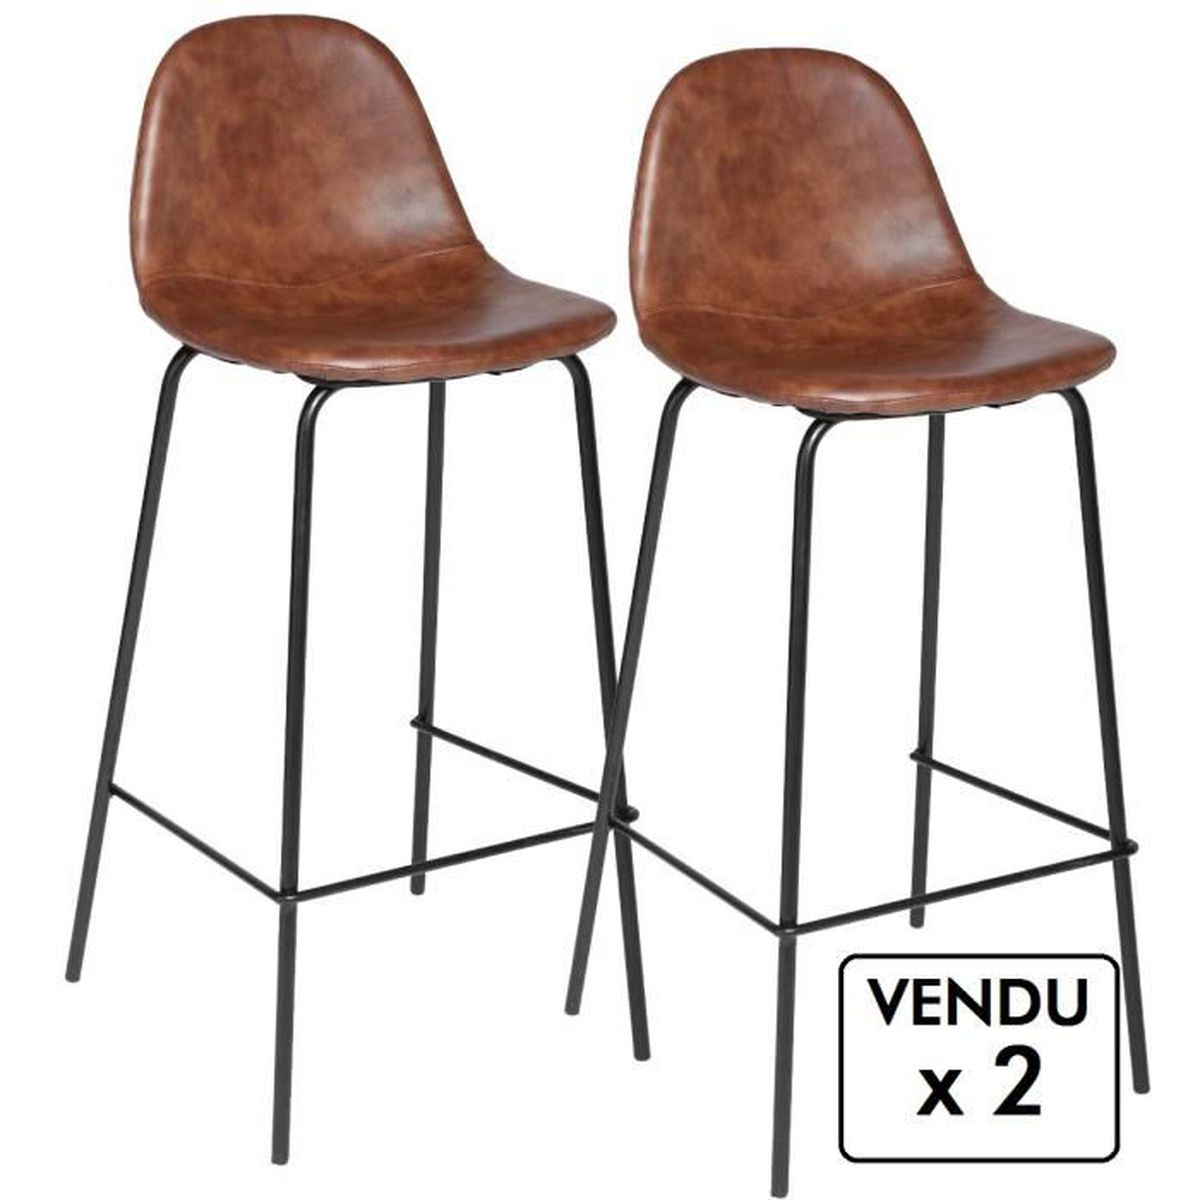 lot de 2 chaises de bar style industriel coloris marron vieilli achat vente tabouret de. Black Bedroom Furniture Sets. Home Design Ideas